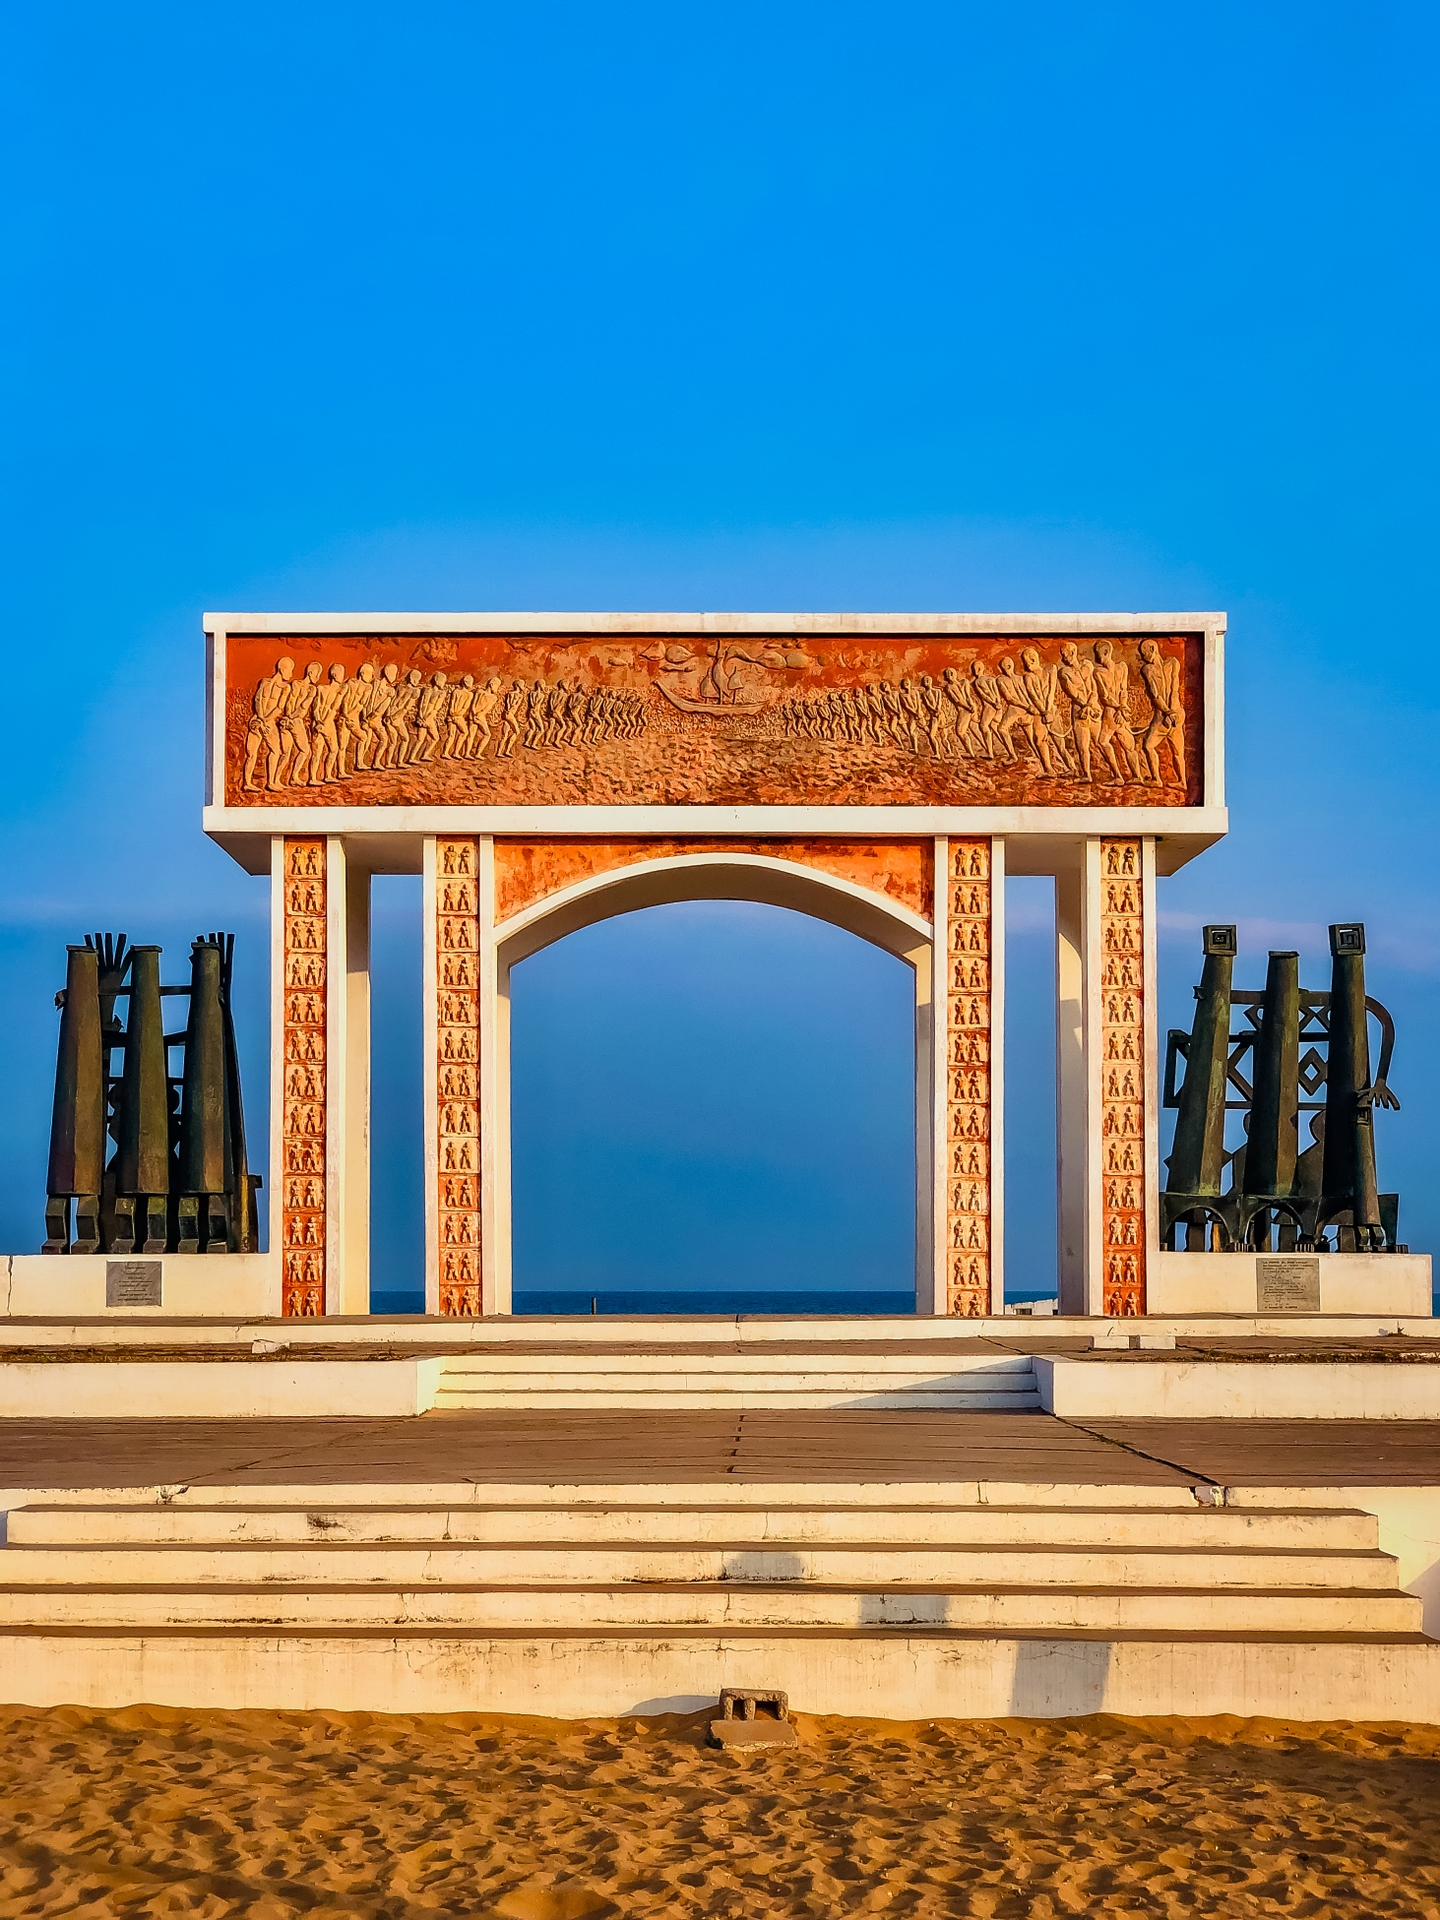 Africa, free, photo, tourism, the door of no return, beach, monument, discovery, historic place